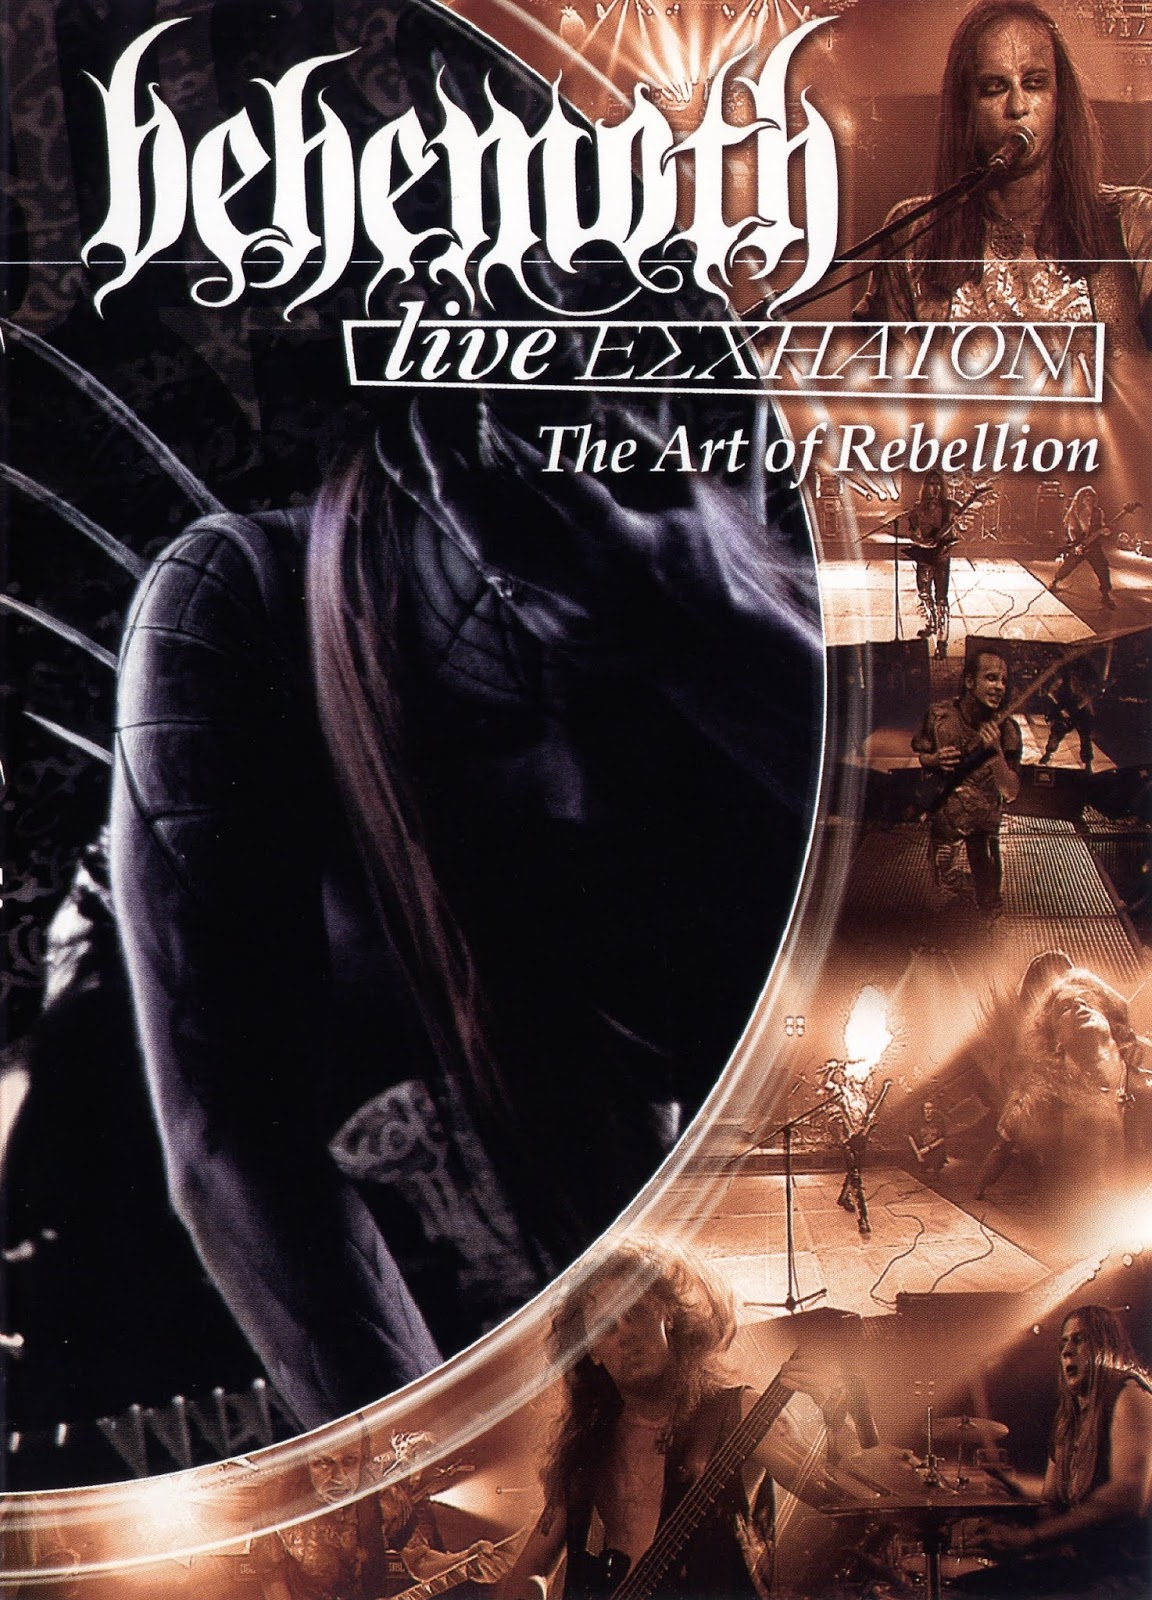 Behemoth — Live Eschaton… The Art of Rebellion DVD (2000)